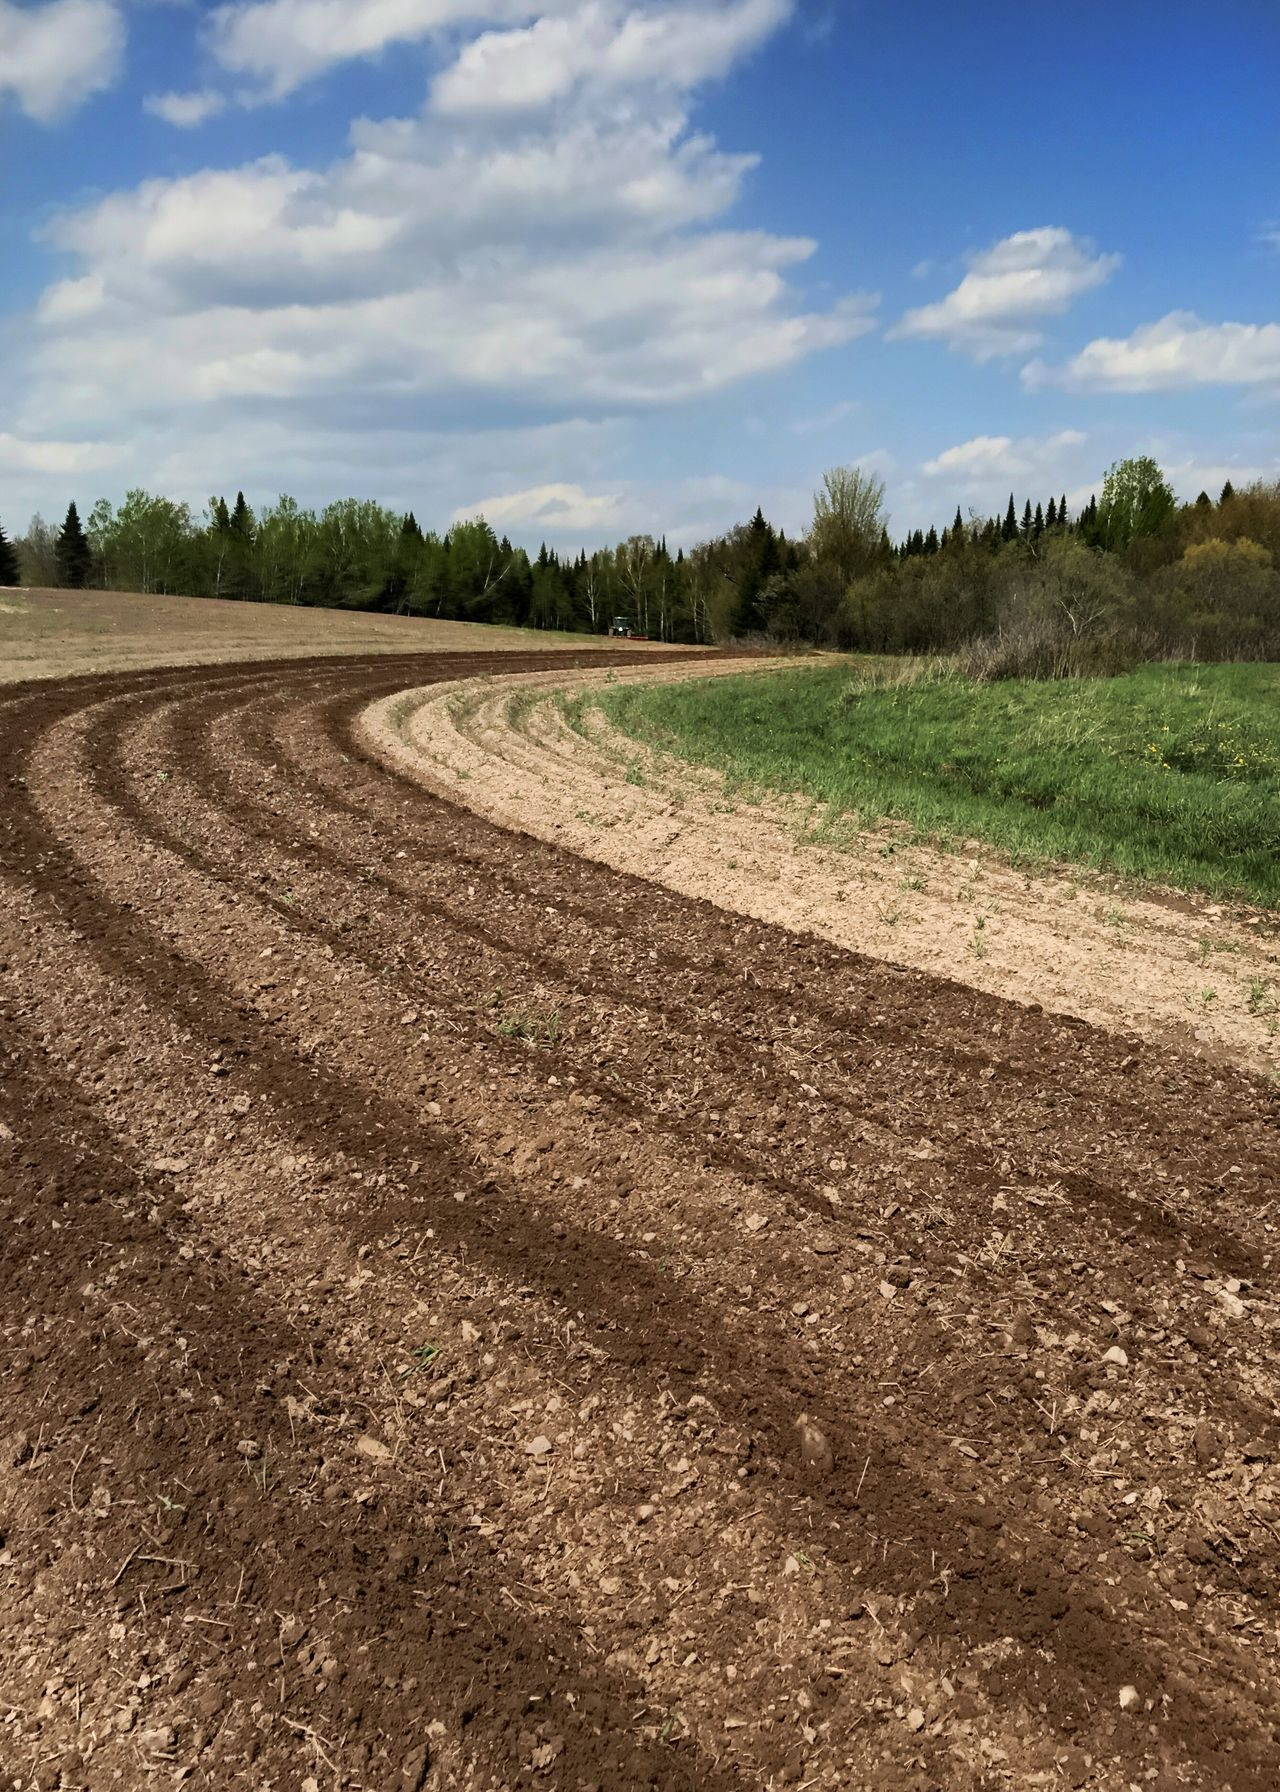 Agricultural field. Agriculture Field Soil Ground Preparation Commercial Agriculture Vertical Landscape Rural Scene Cloud - Sky Field Plough Scenics Outdoors Plowed Field